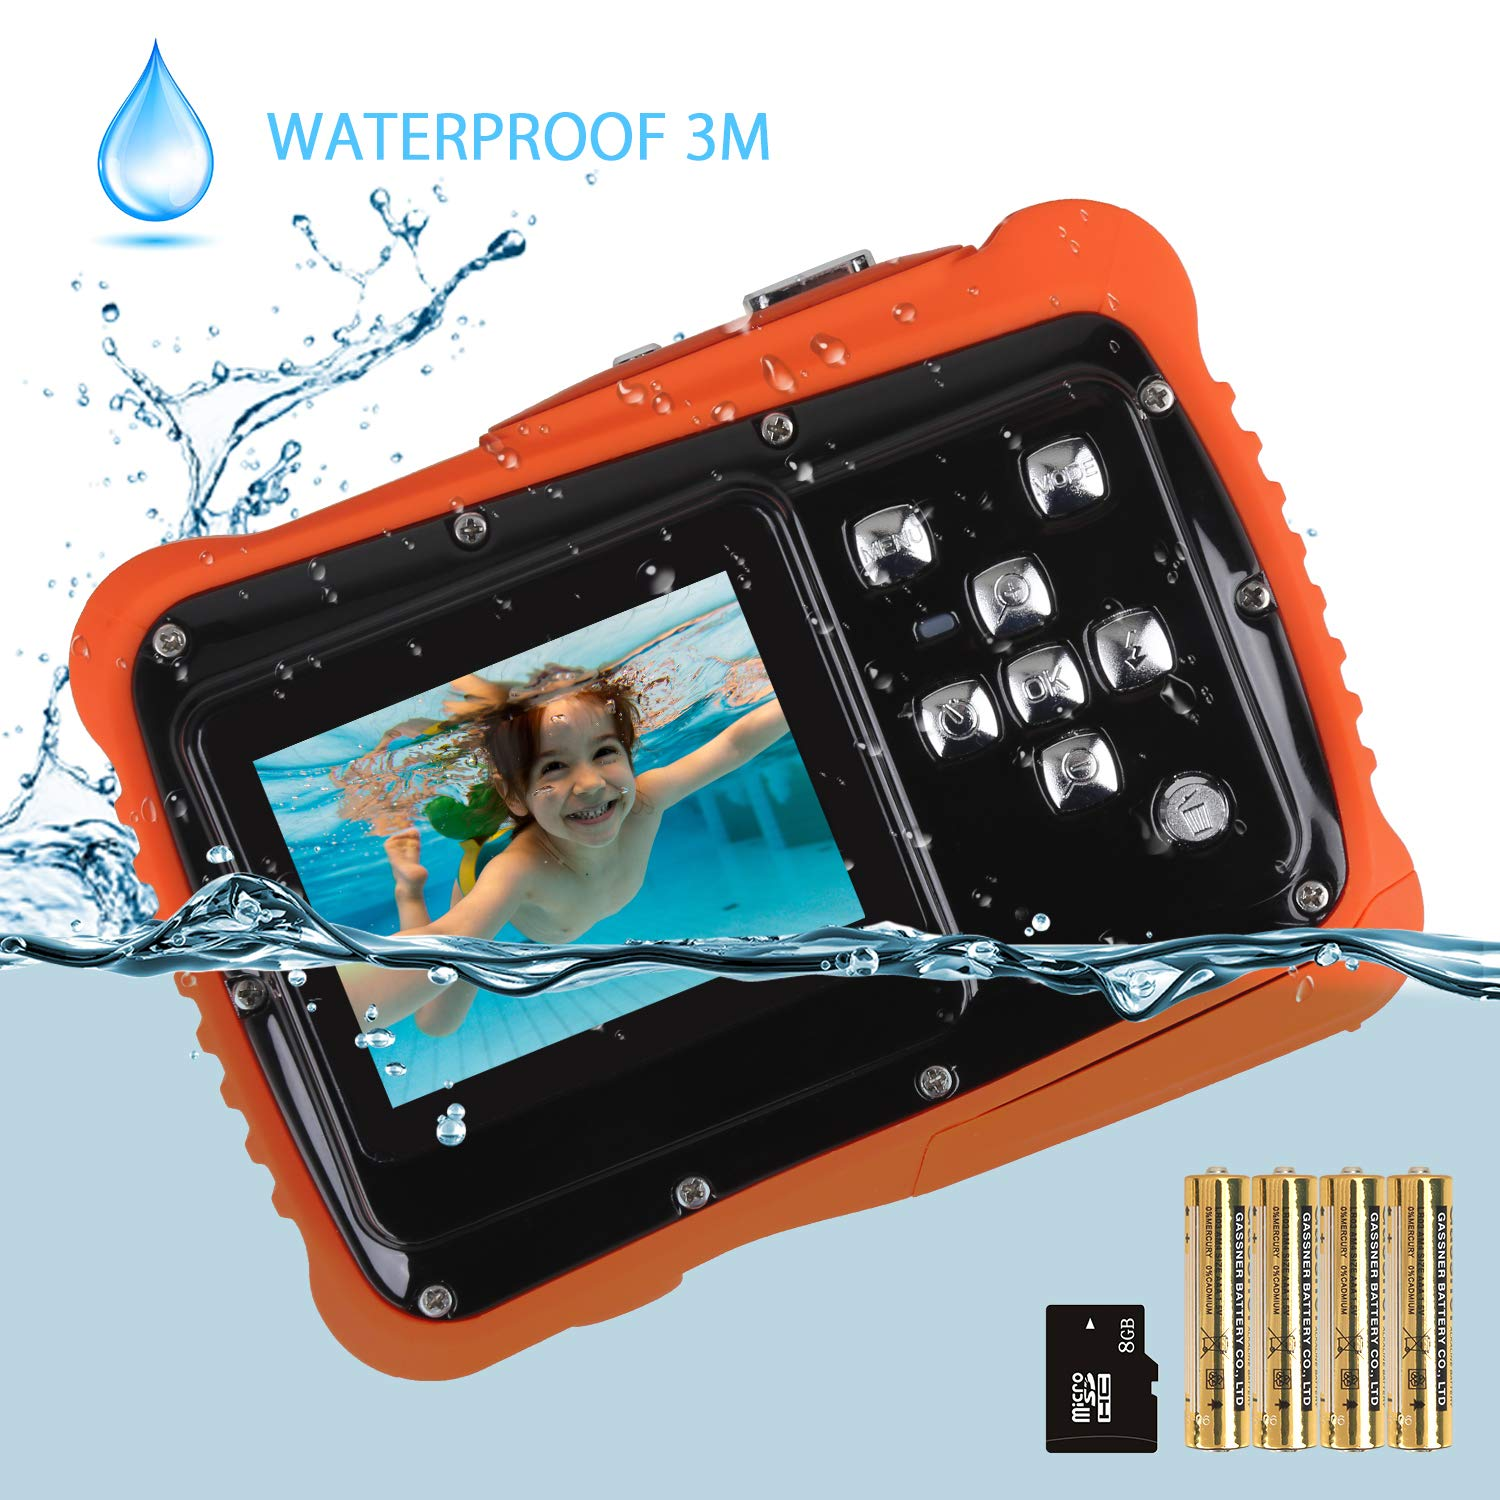 Kids Camera, Digital Waterproof Camera for Children with 3M Waterproof, 2 Inch LCD Screen, 12MP HD Resolution, 8X Digital Zoom and Flash